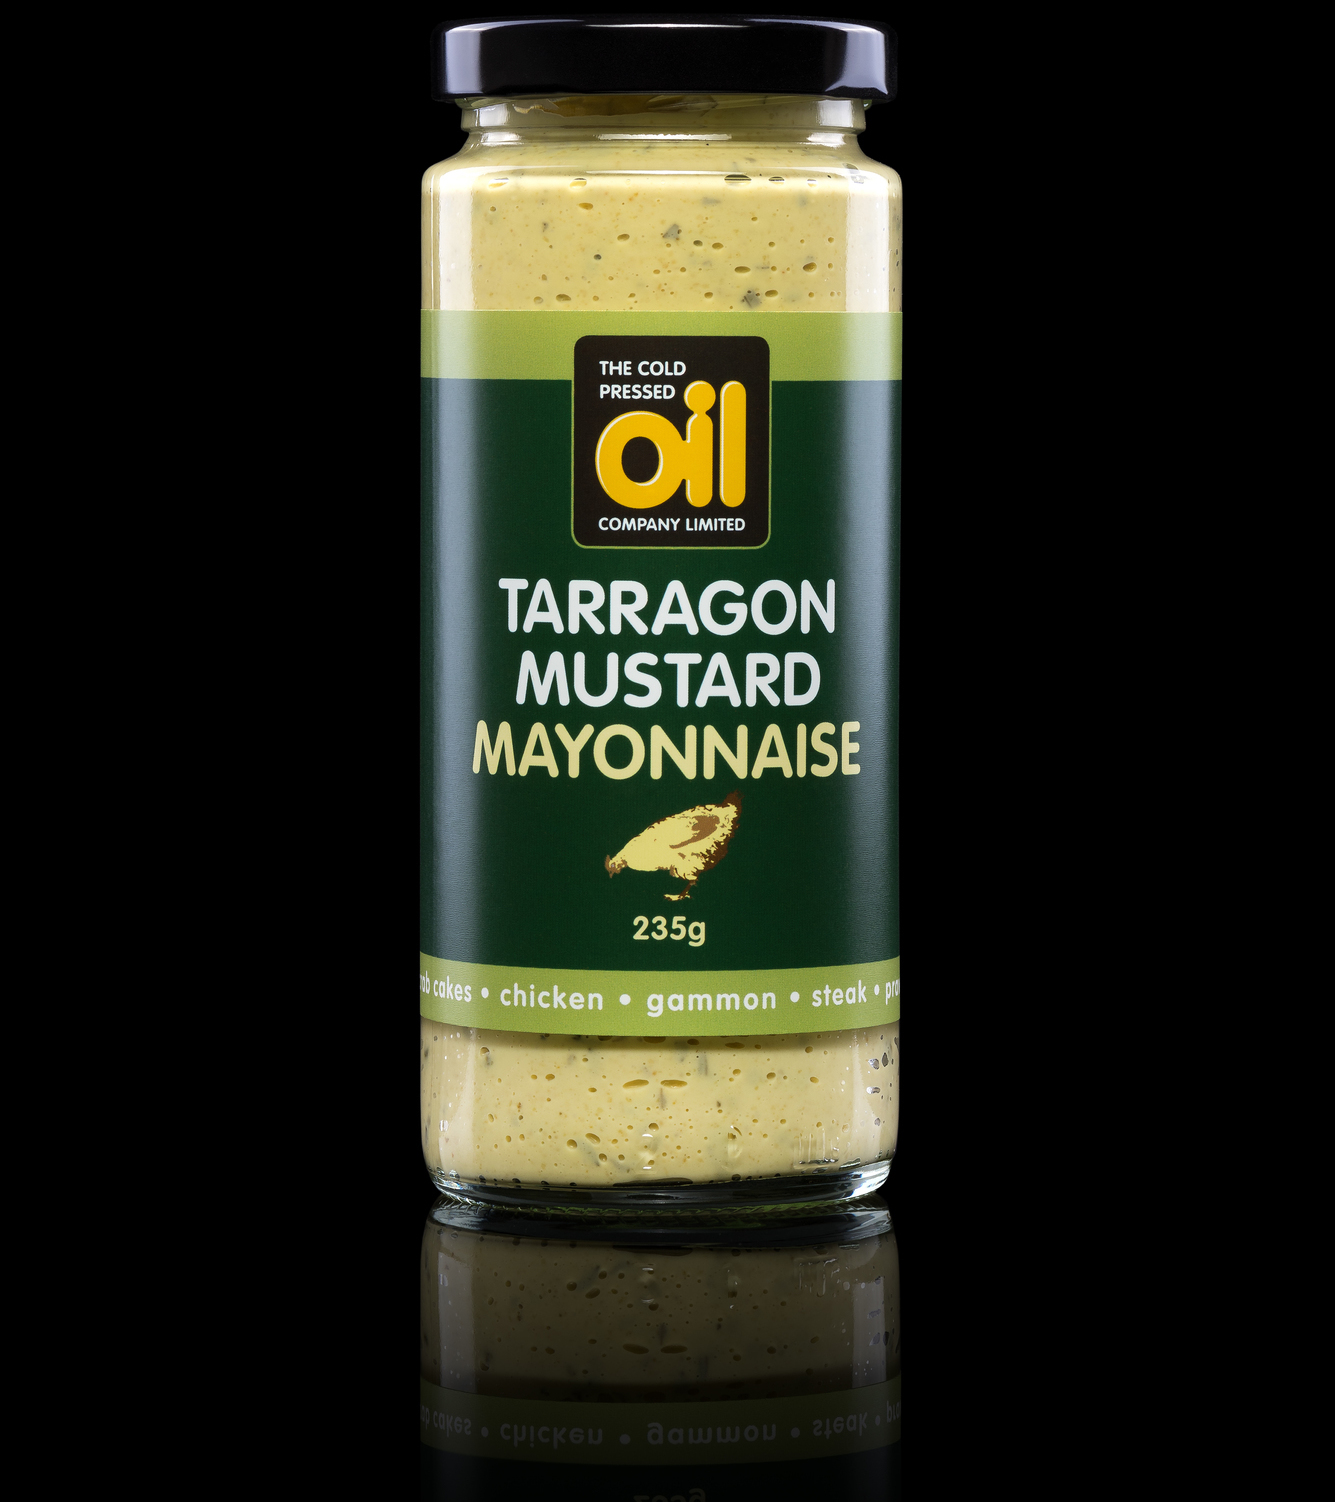 Tarragon Mustard Mayonnaise © The Electric Eye Photography (cropped)